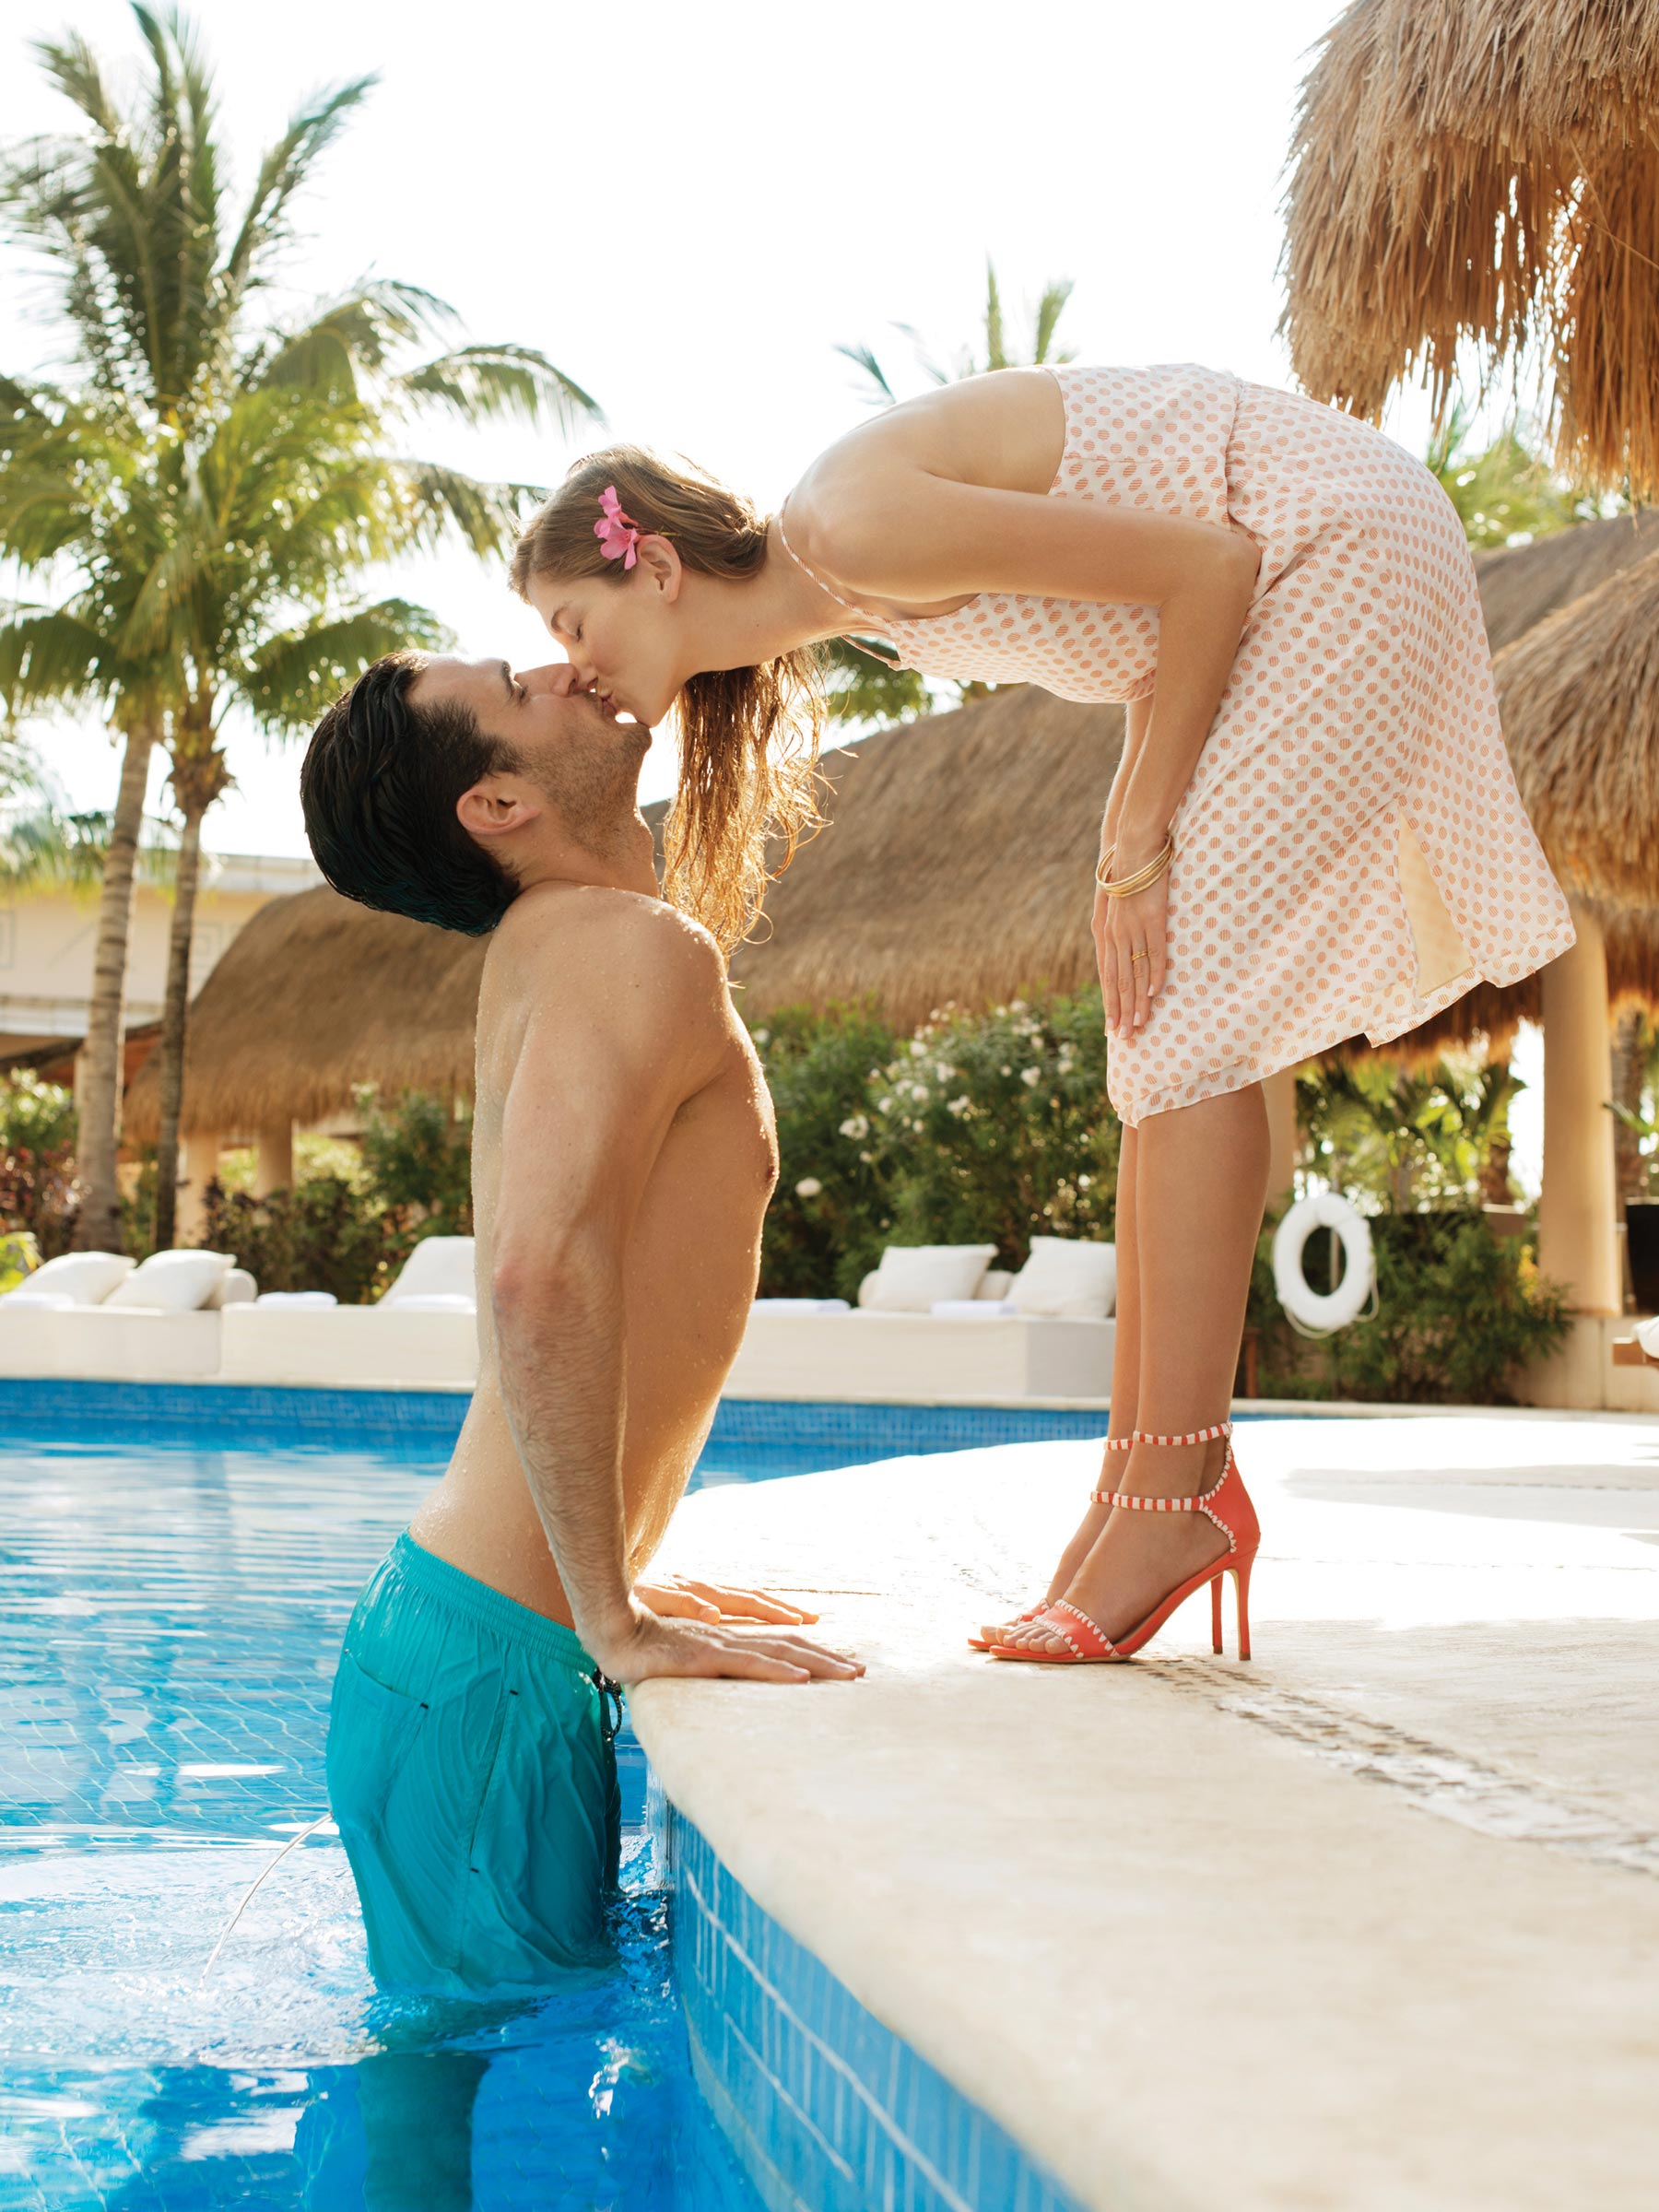 Get Romantic with Our Riviera Maya Honeymoon Packages